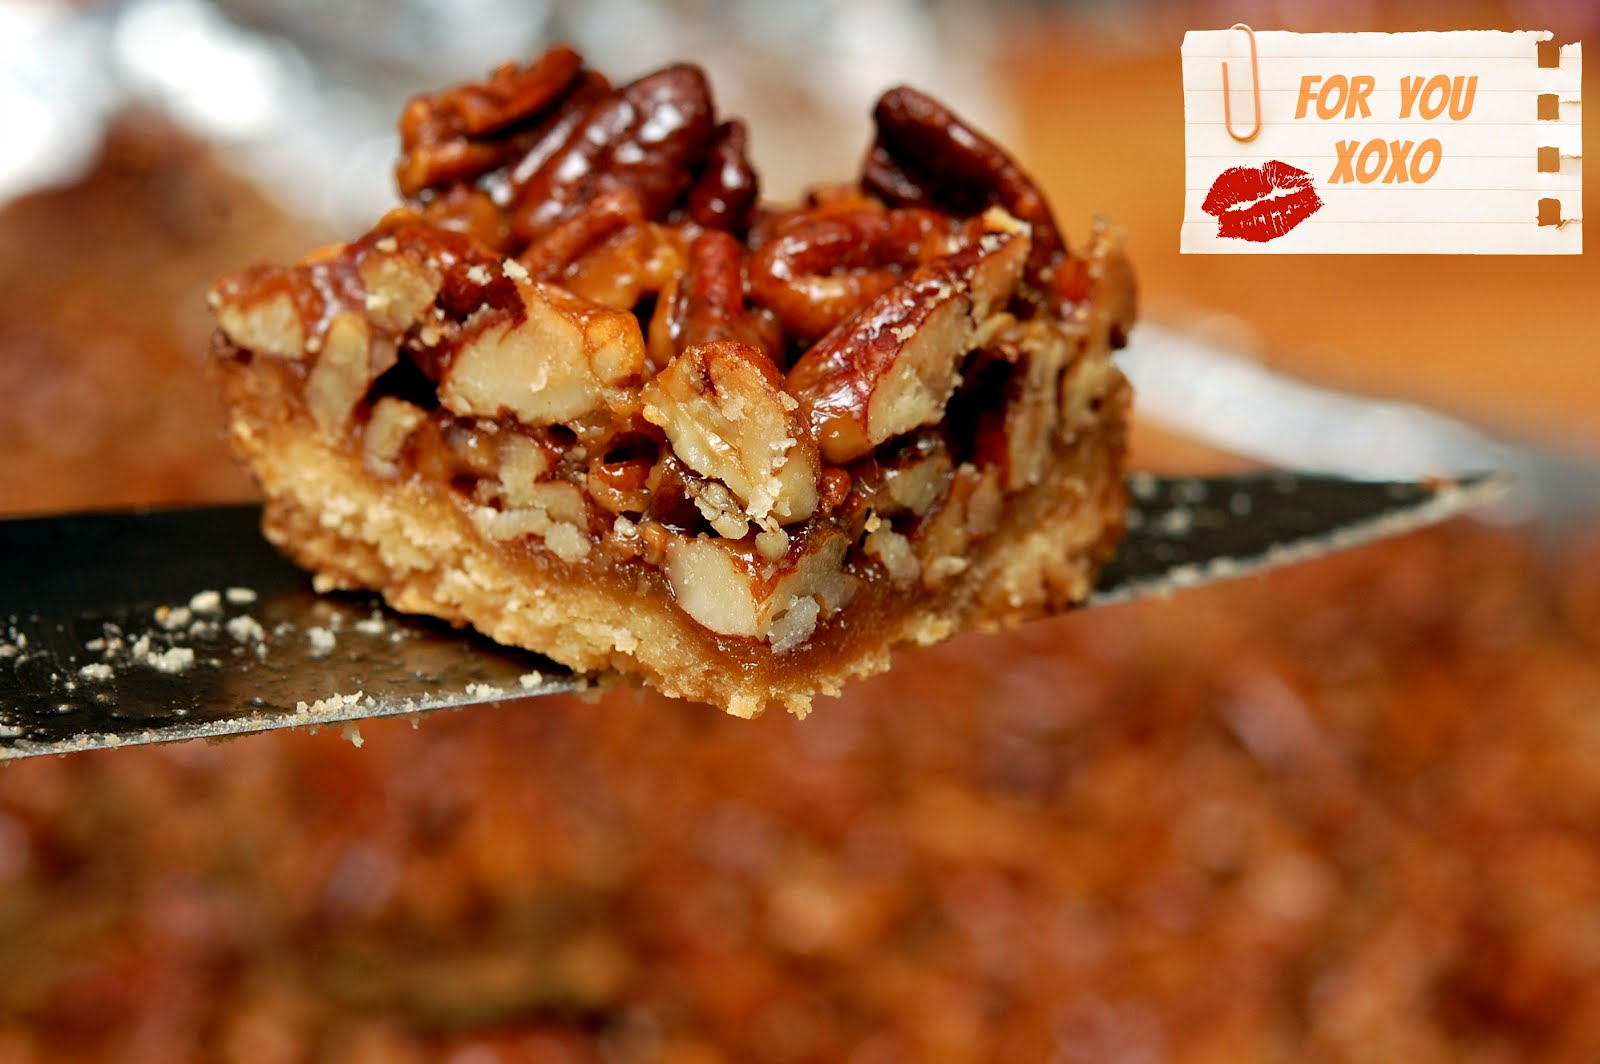 PECAN PIE SHORTBREAD BARS - Hugs and Cookies XOXO